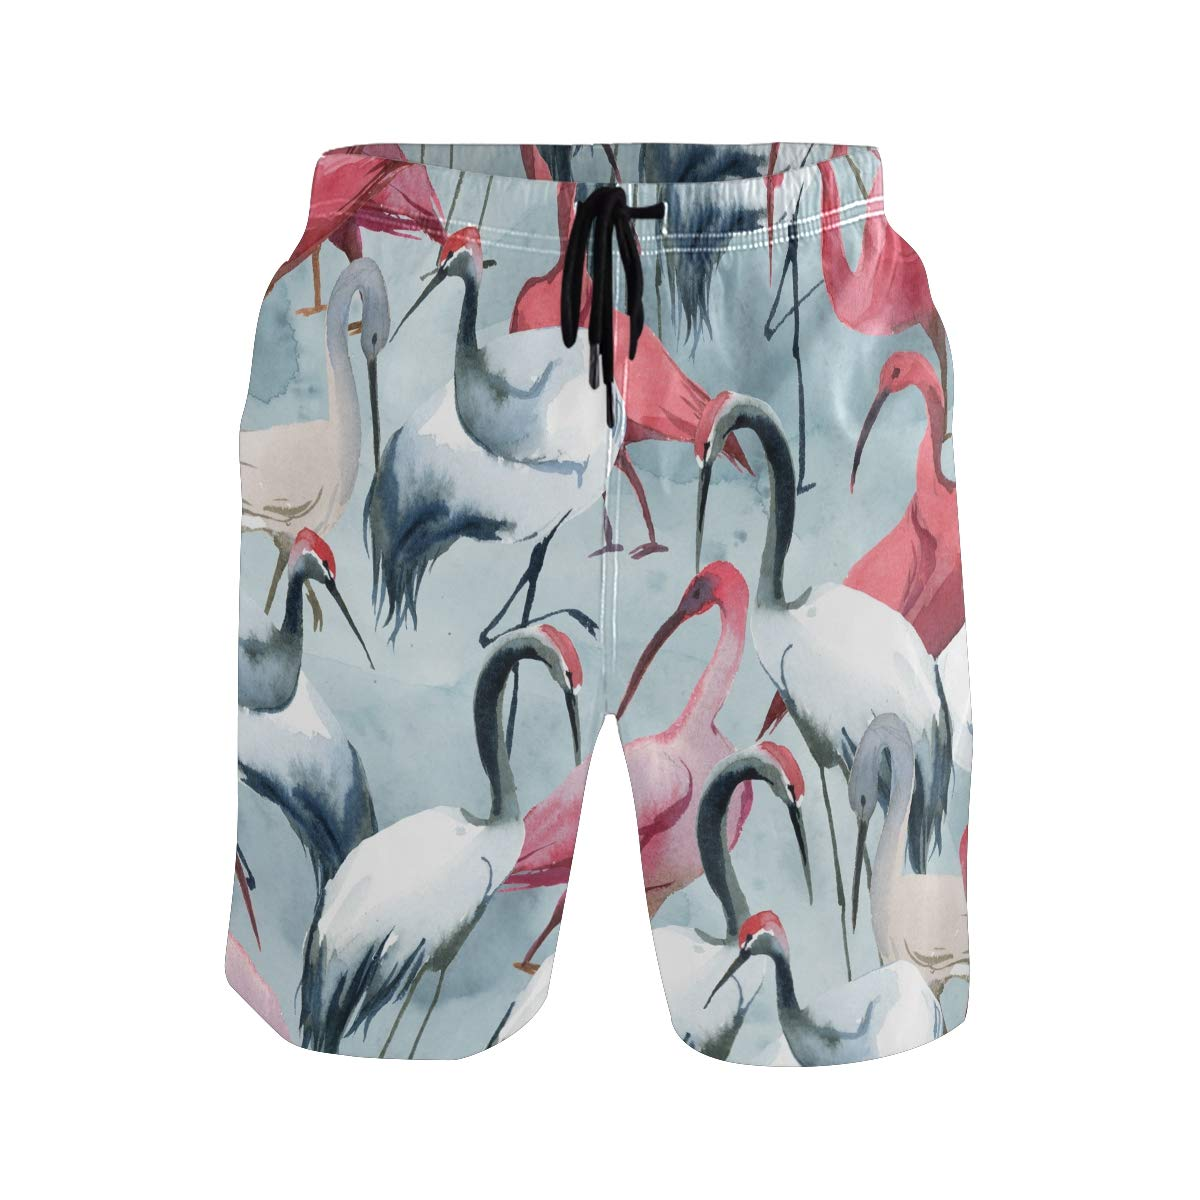 JERECY Mens Swim Trunks Watercolor Crane Pattern Quick Dry Board Shorts with Drawstring and Pockets